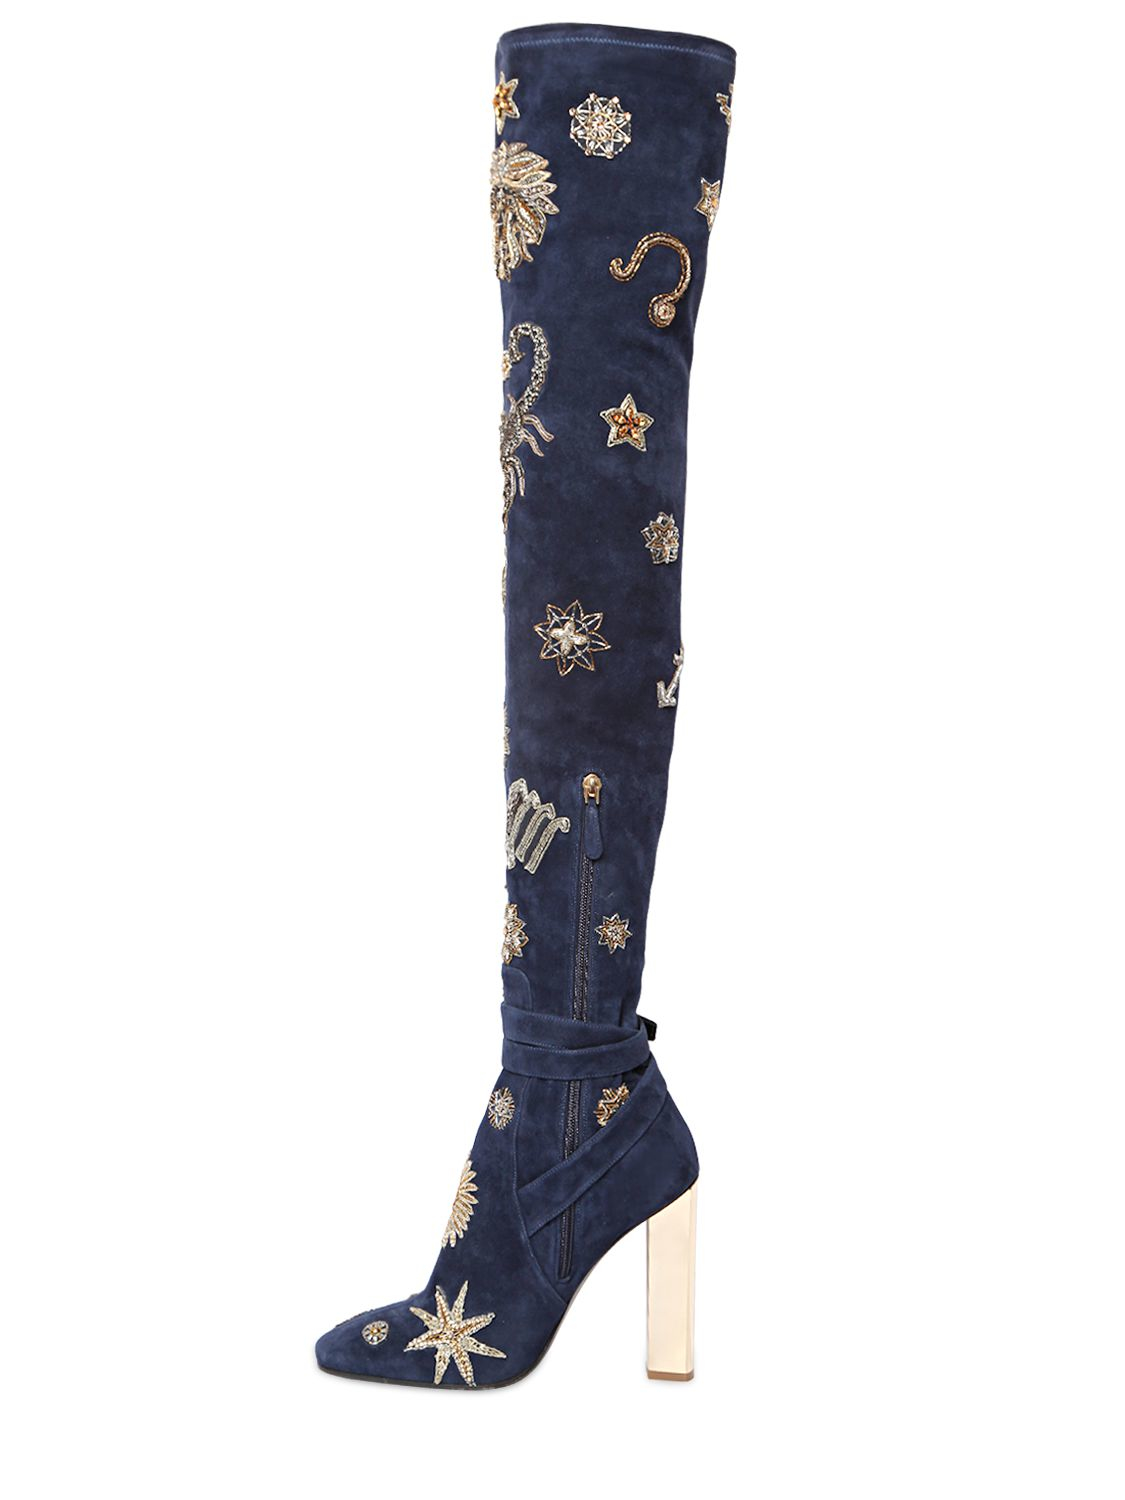 Emilio Pucci 110mm Zodiac Suede Over The Knee Boots in Blue